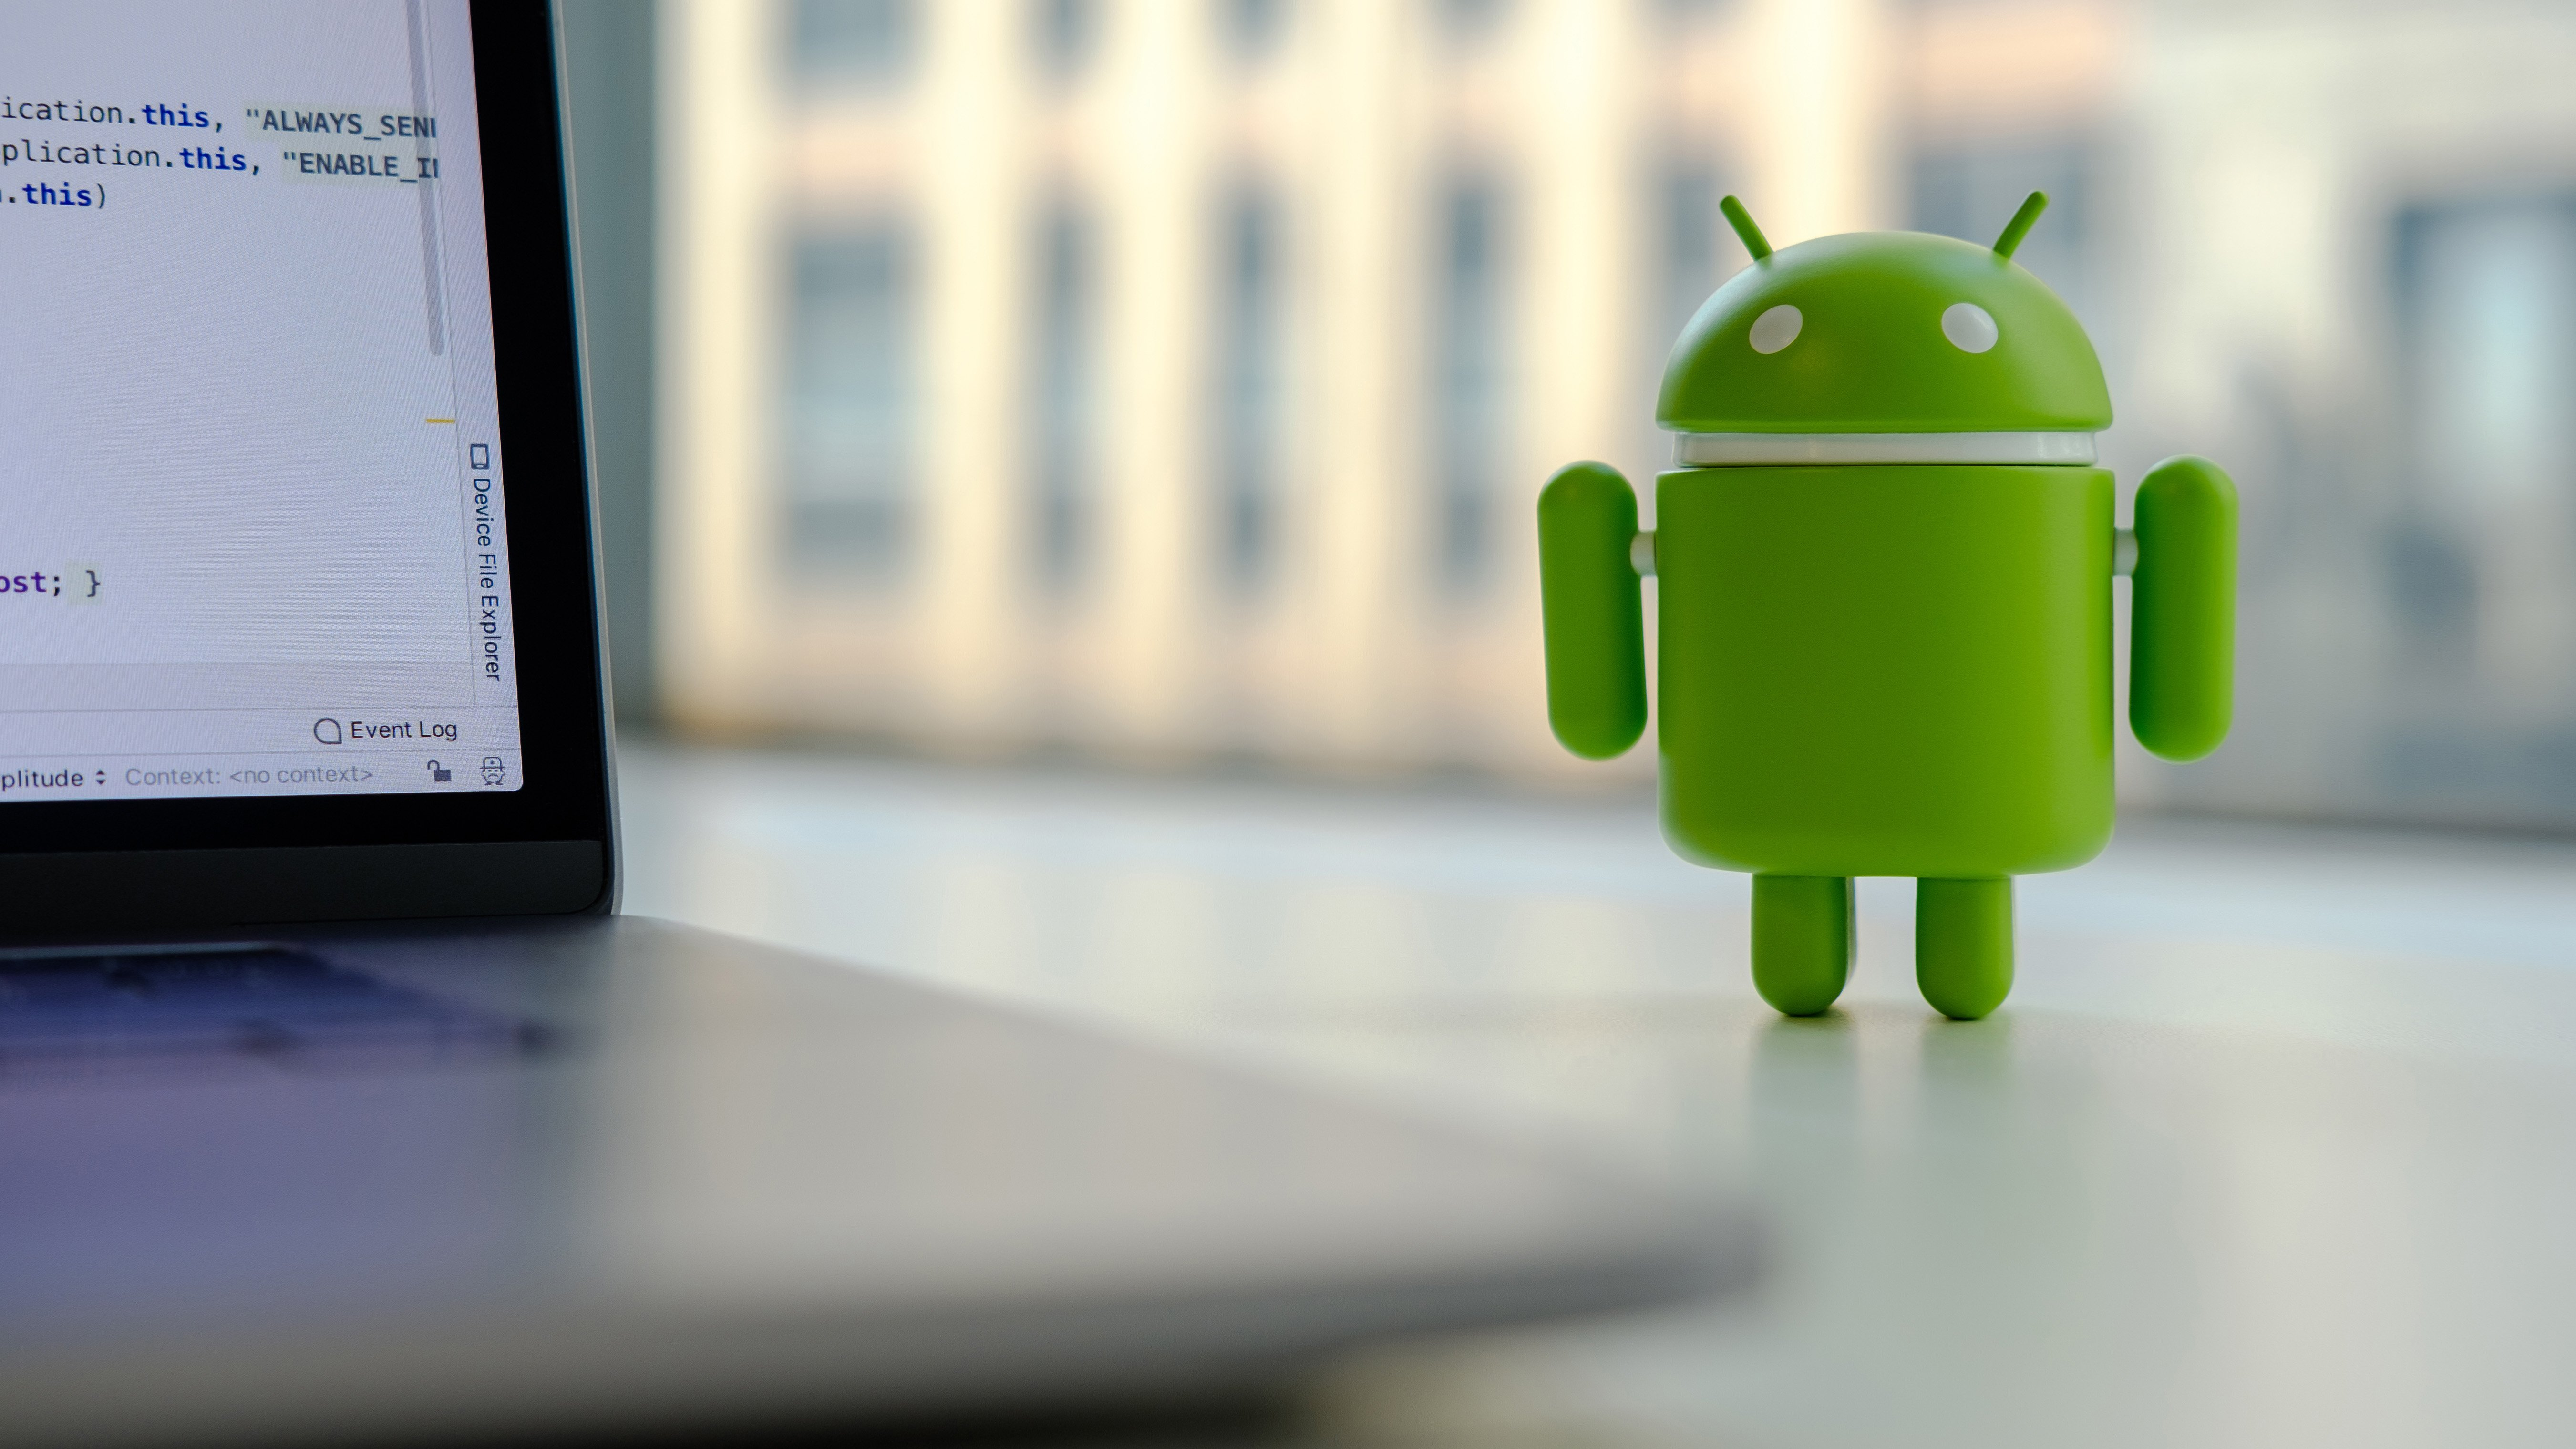 Android 10 has finally launched, but only on some devices